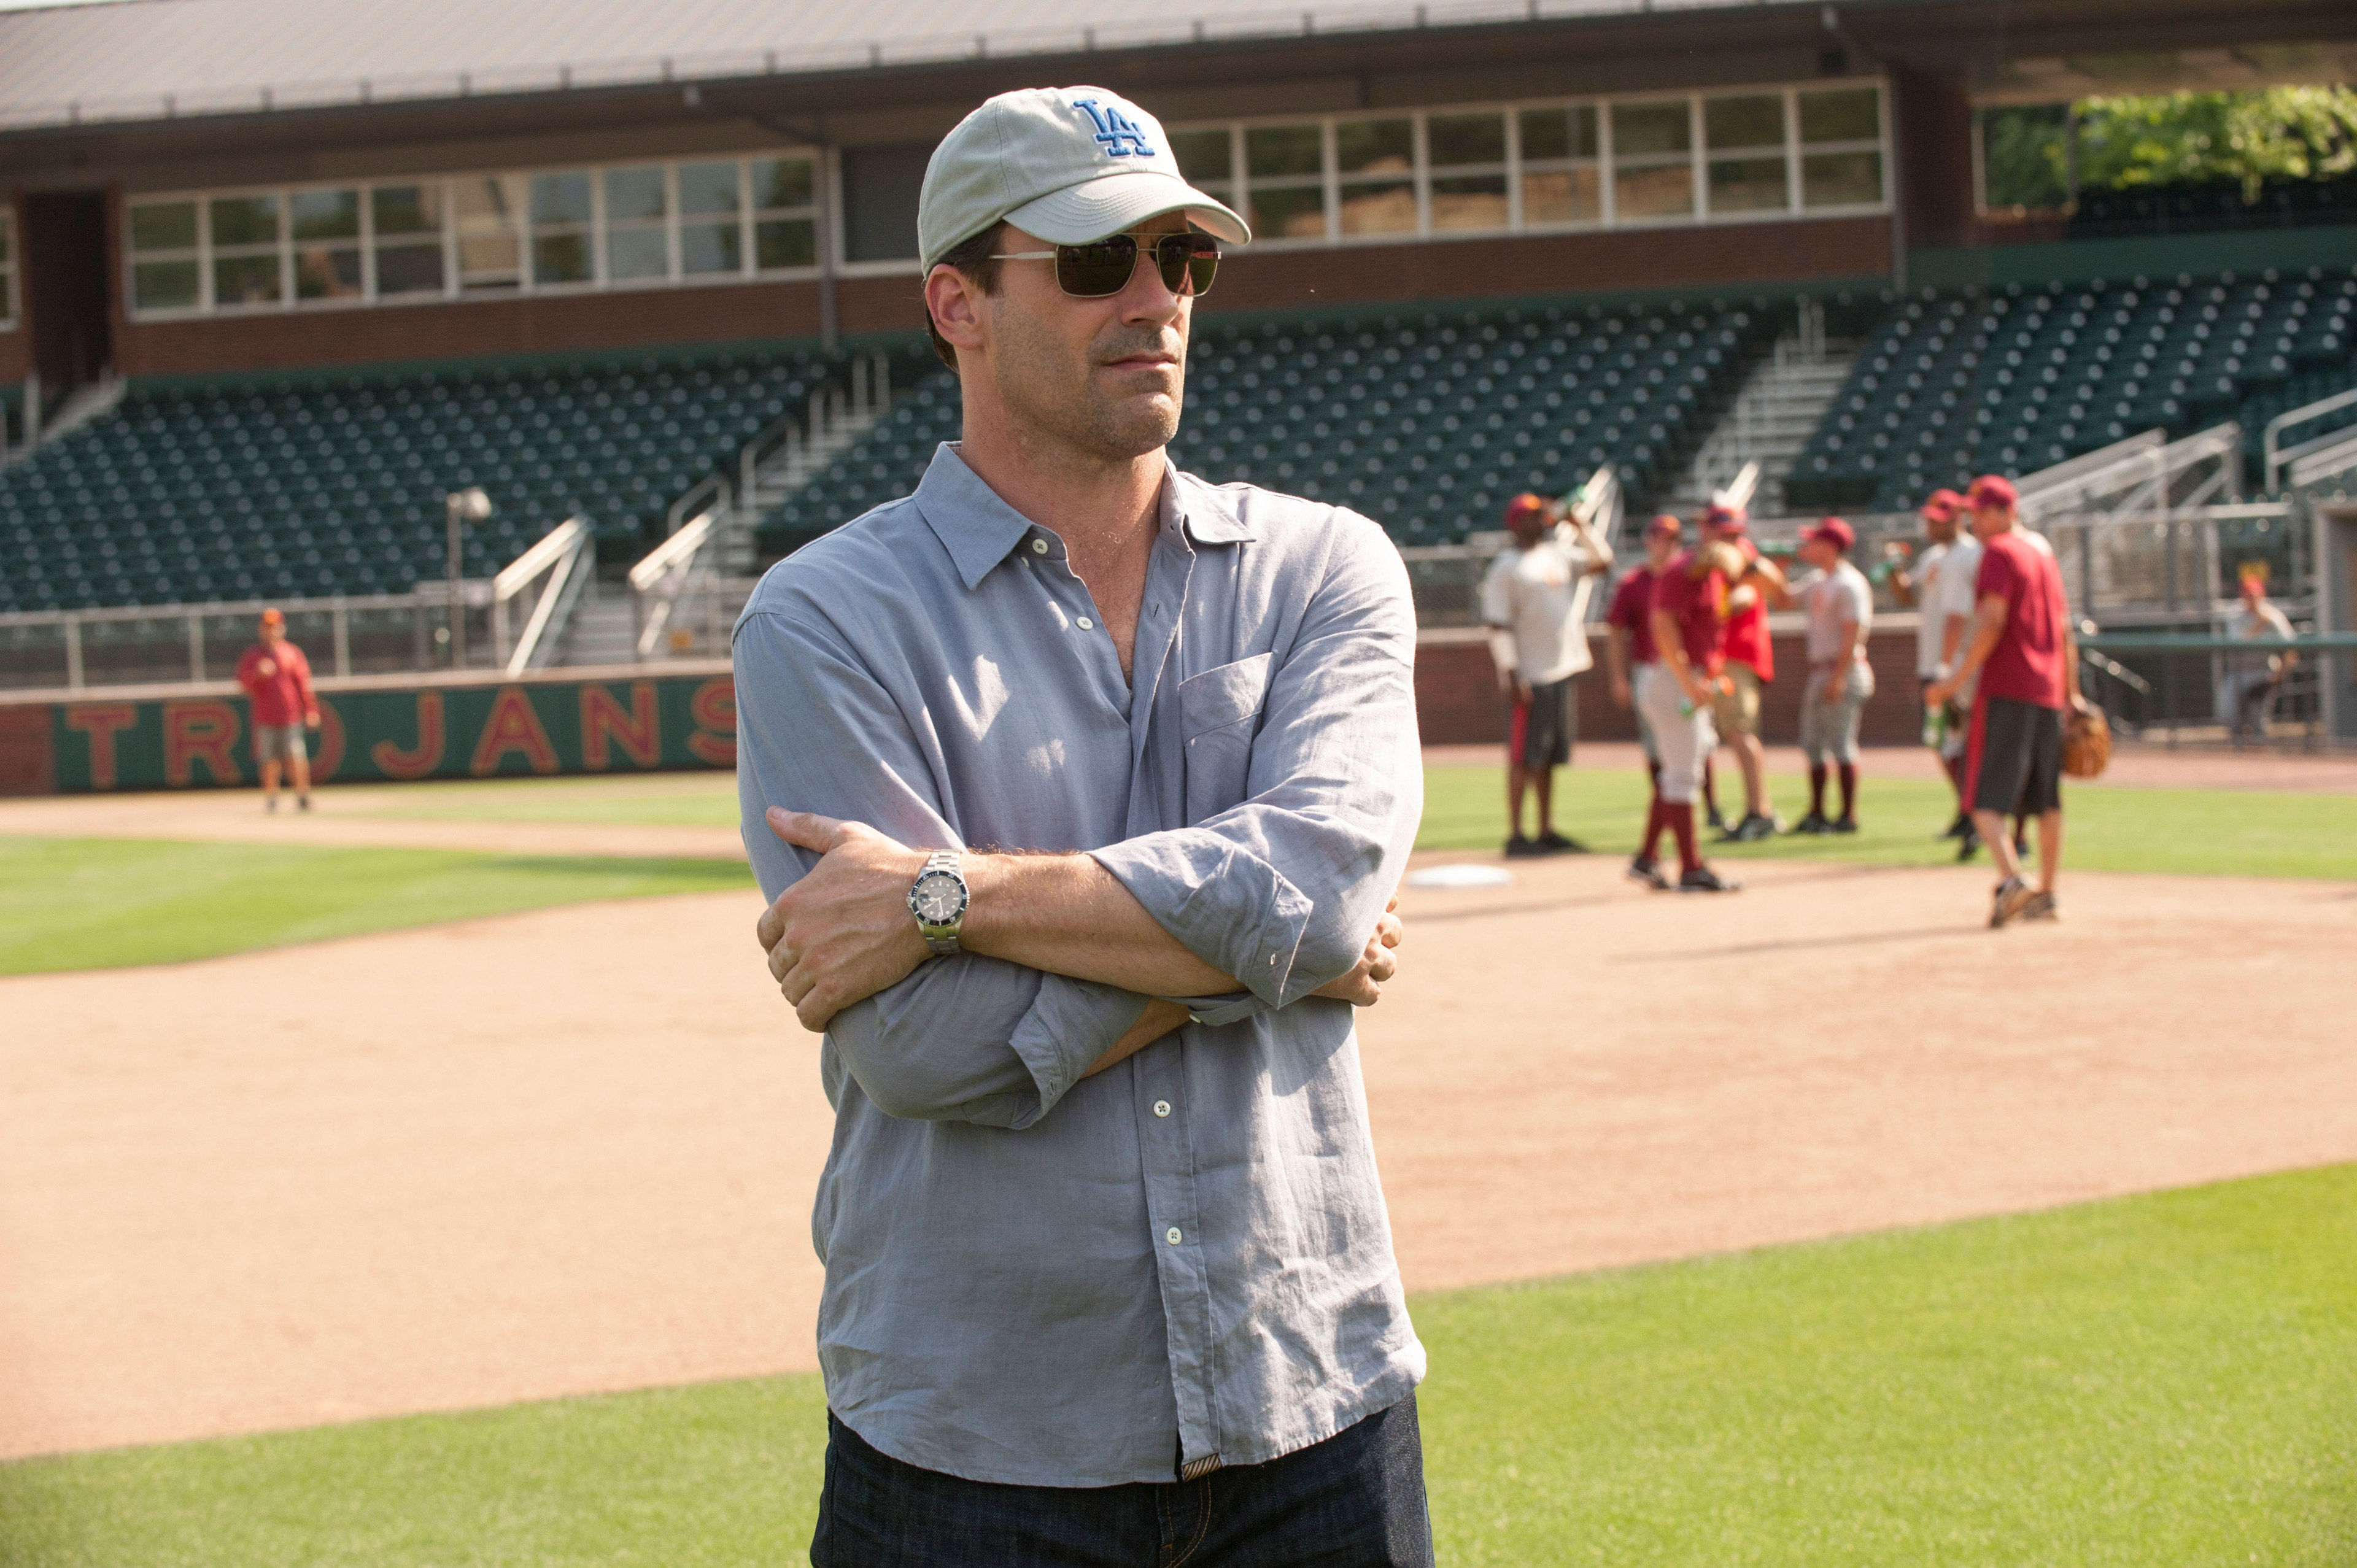 Million Dollar Arm Backgrounds on Wallpapers Vista